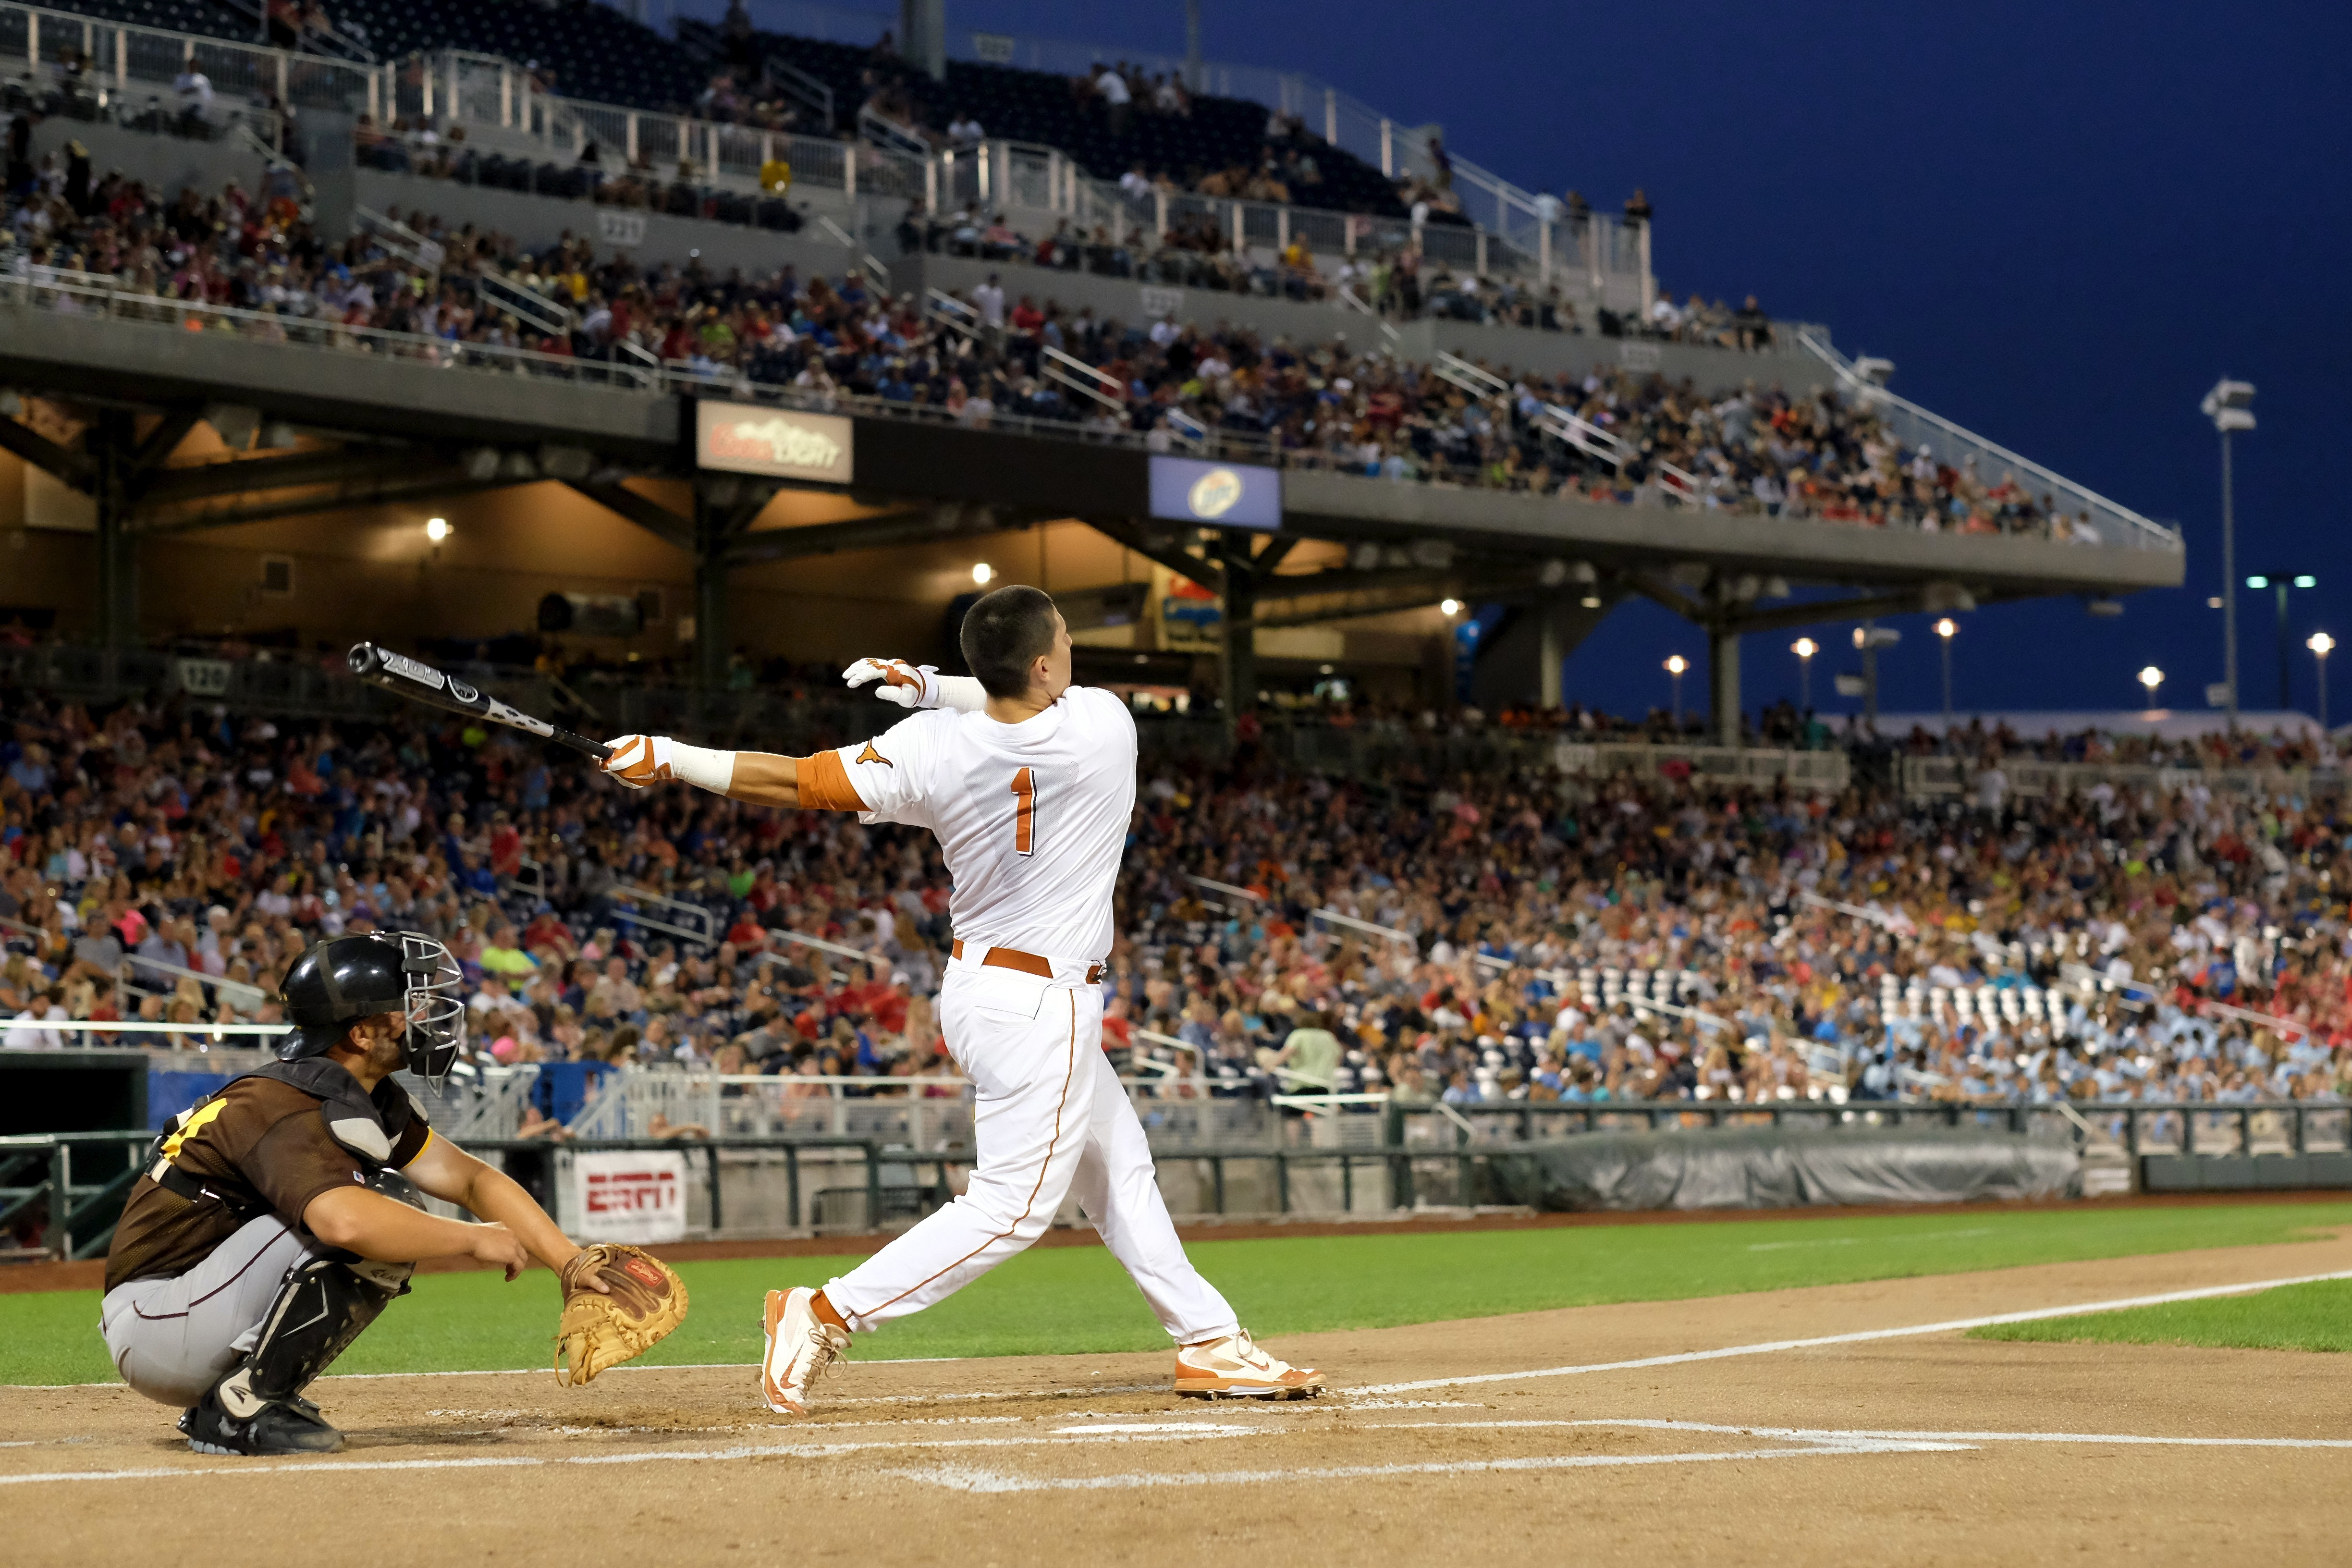 6th Annual TD Ameritrade College Home Run Derby Slated for July 2